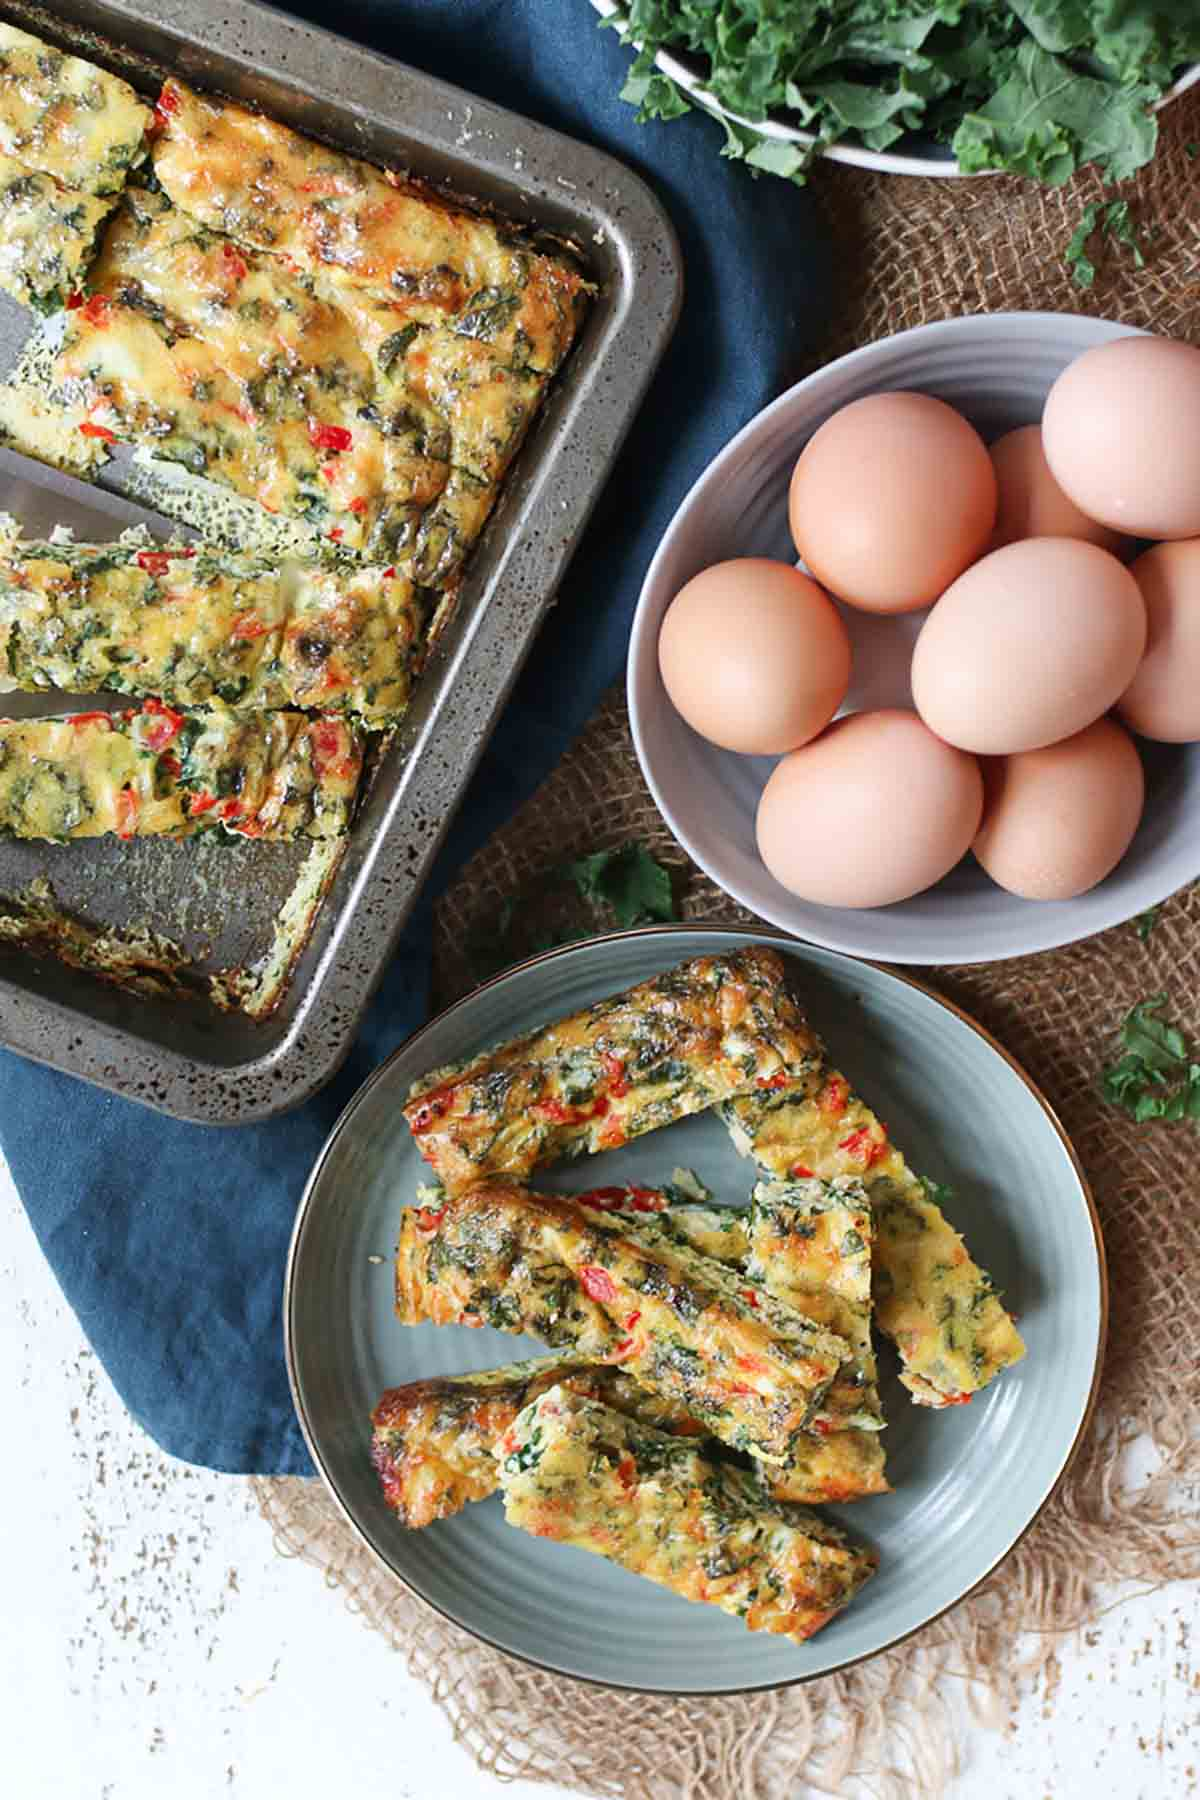 Birds eye view of a frittata cut up into slices on a plate, whole eggs in a bowl, and the remaining frittata on a baking tray.